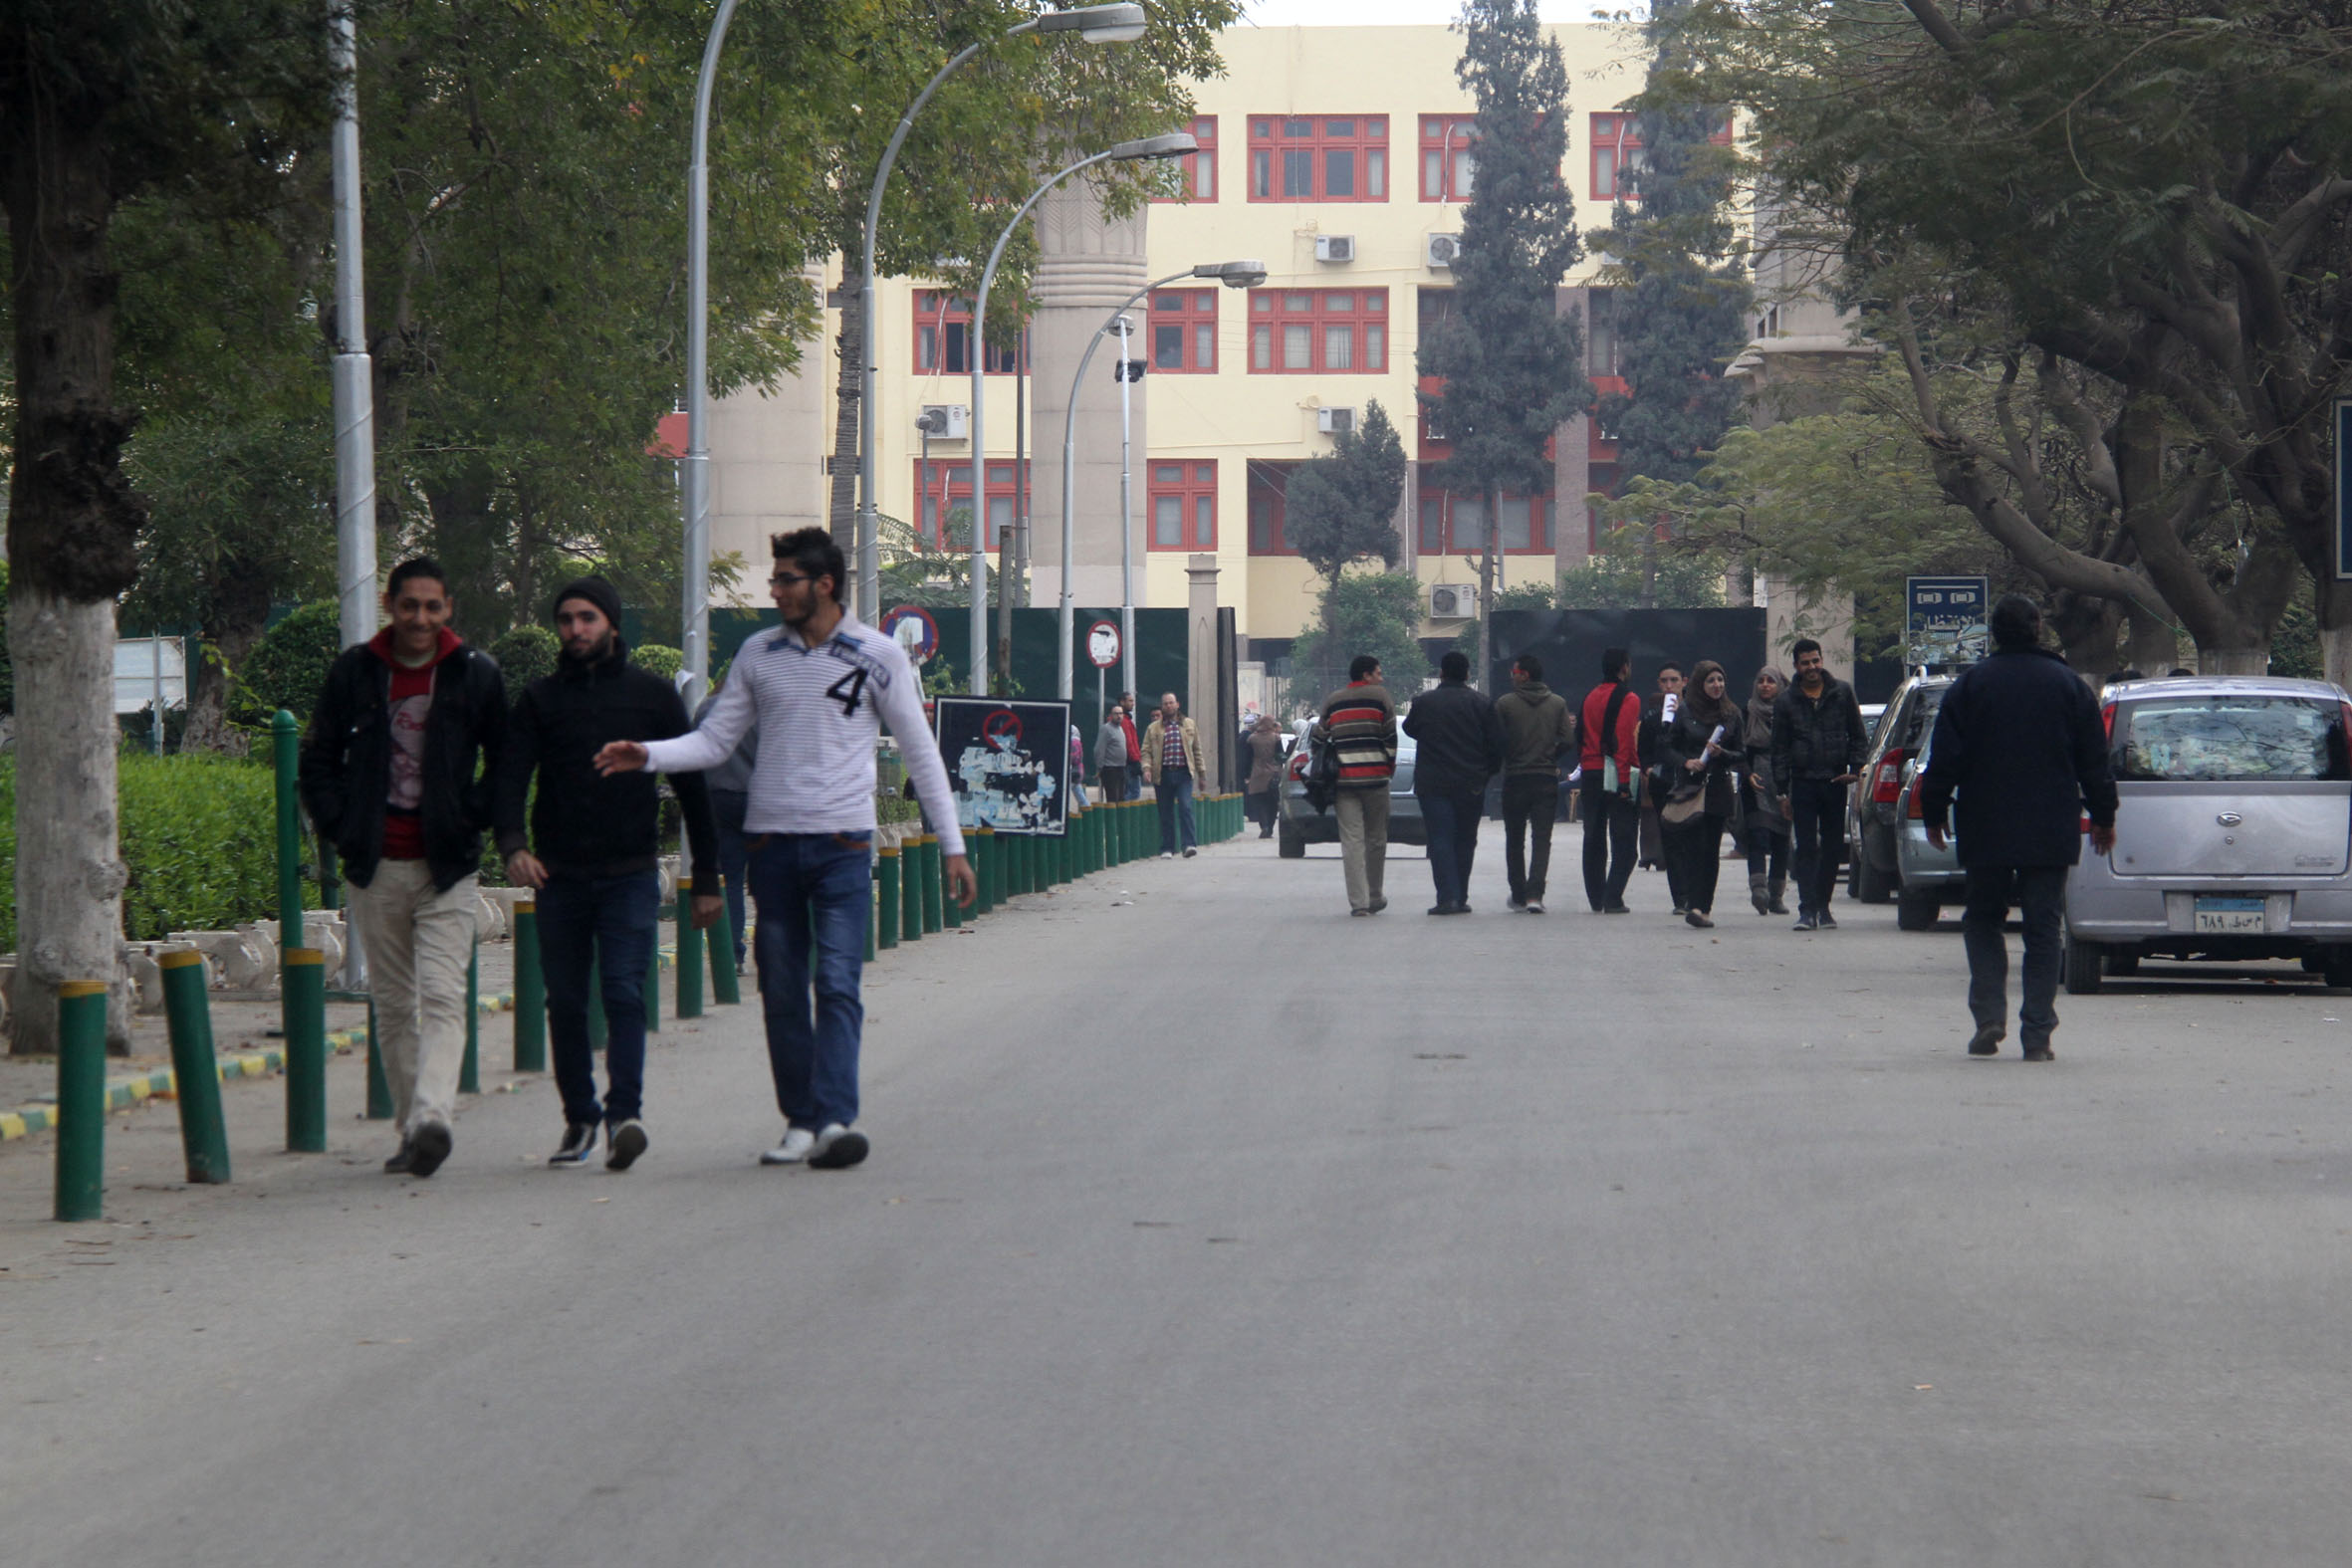 Calm returns to the Ain Shams campus on Tuesday, a day after a student march to the Ministry of Defence ended in violence and arrests. (Photo by Mohamed Omar\ DNE)